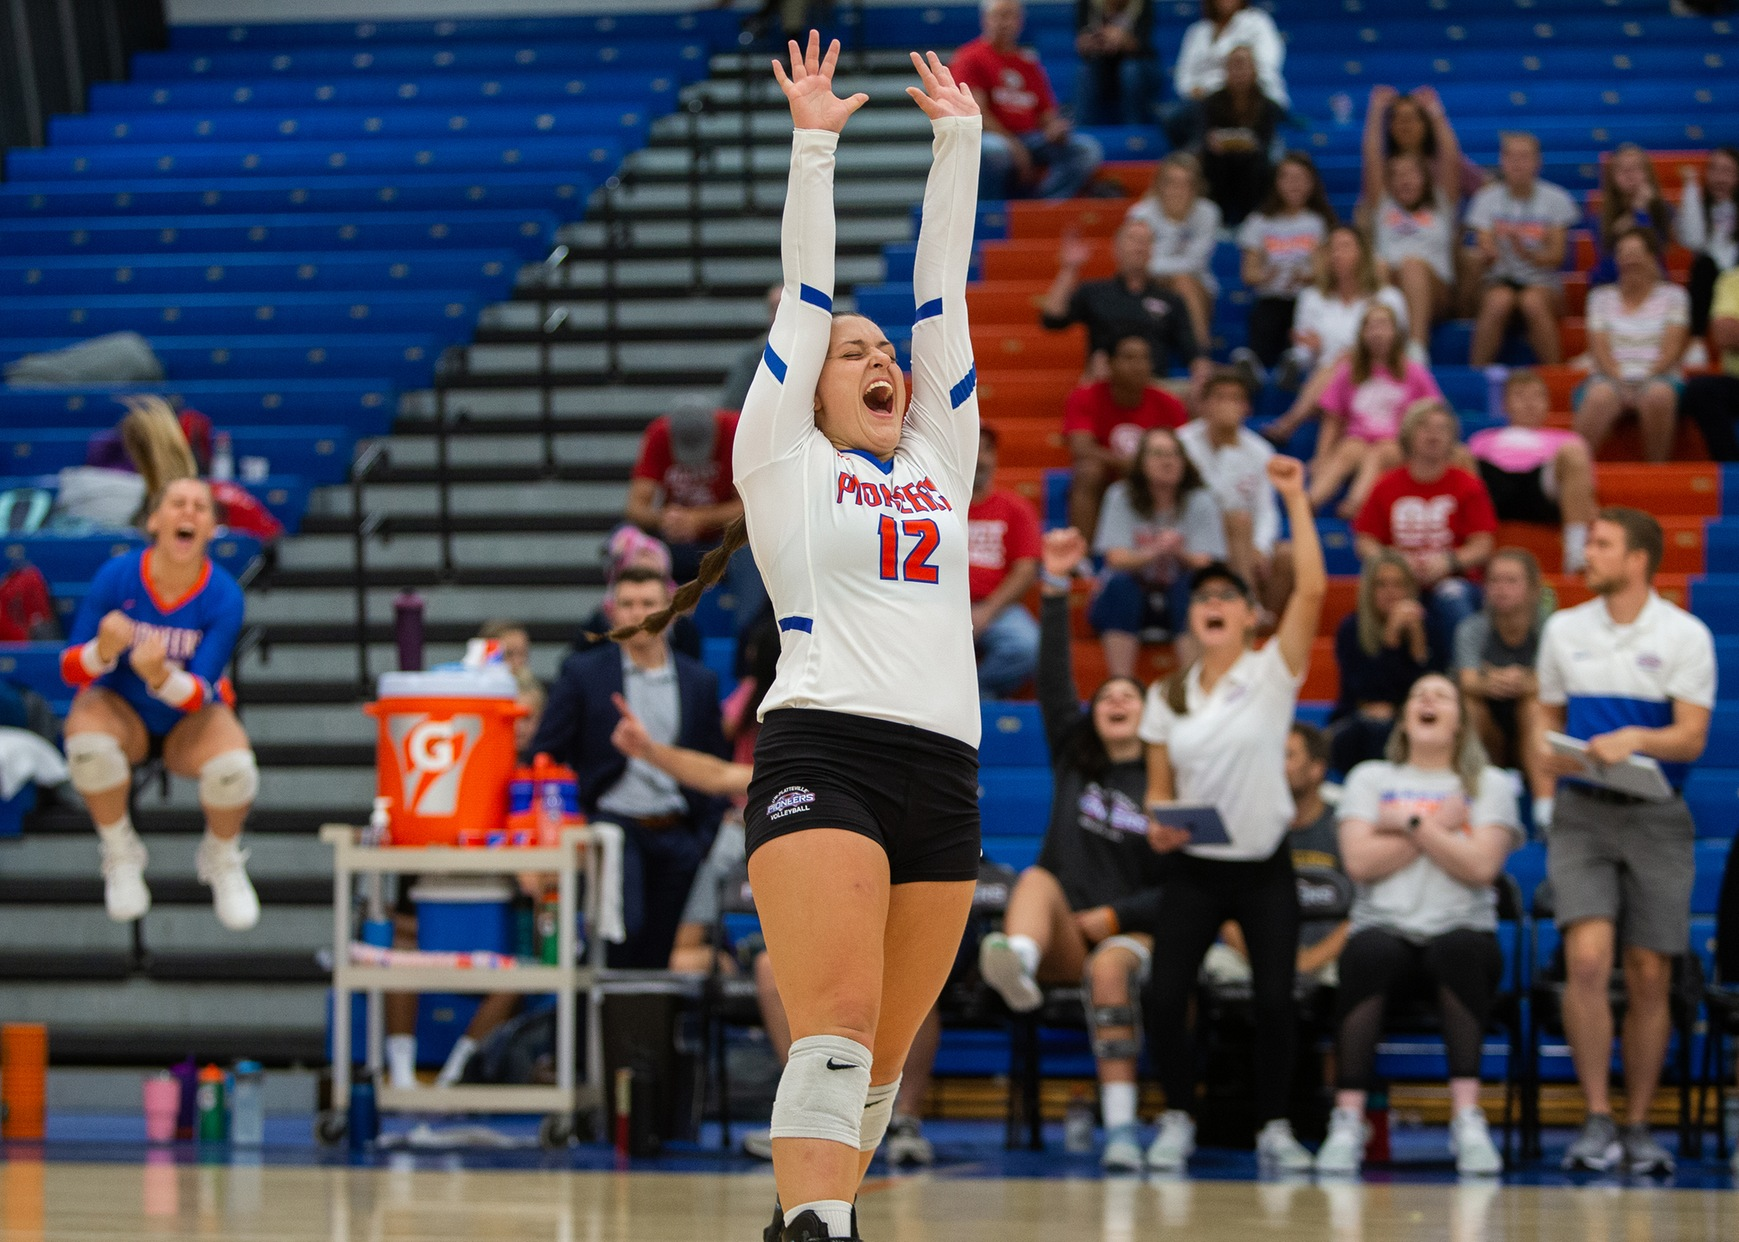 Volleyball goes 4-0 at UW-Platteville Invite, Asche and Kalinowski named All-Tournament